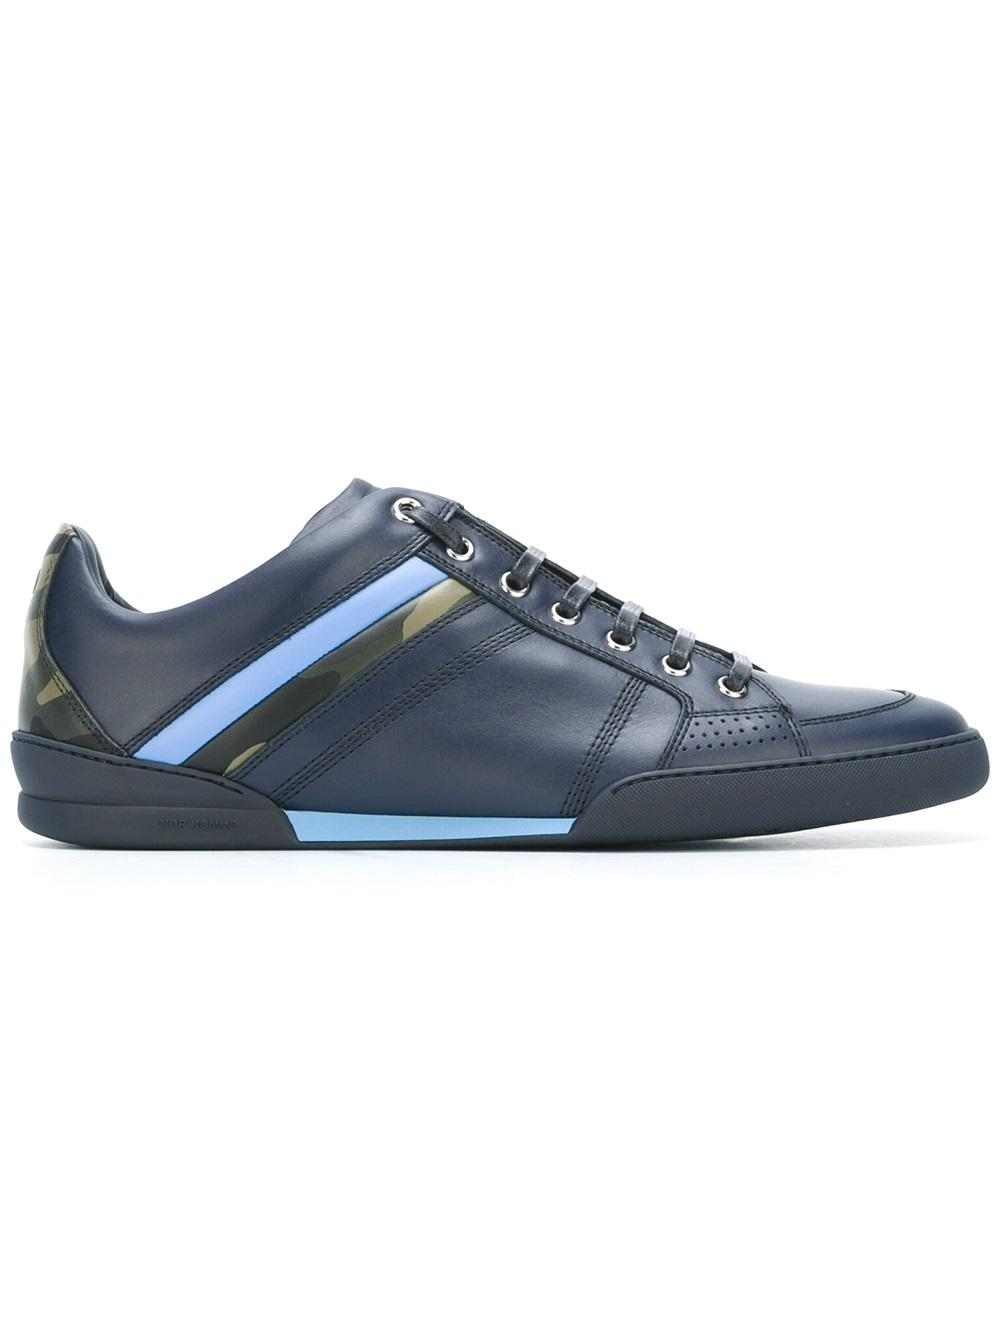 Sneakers homme outlet